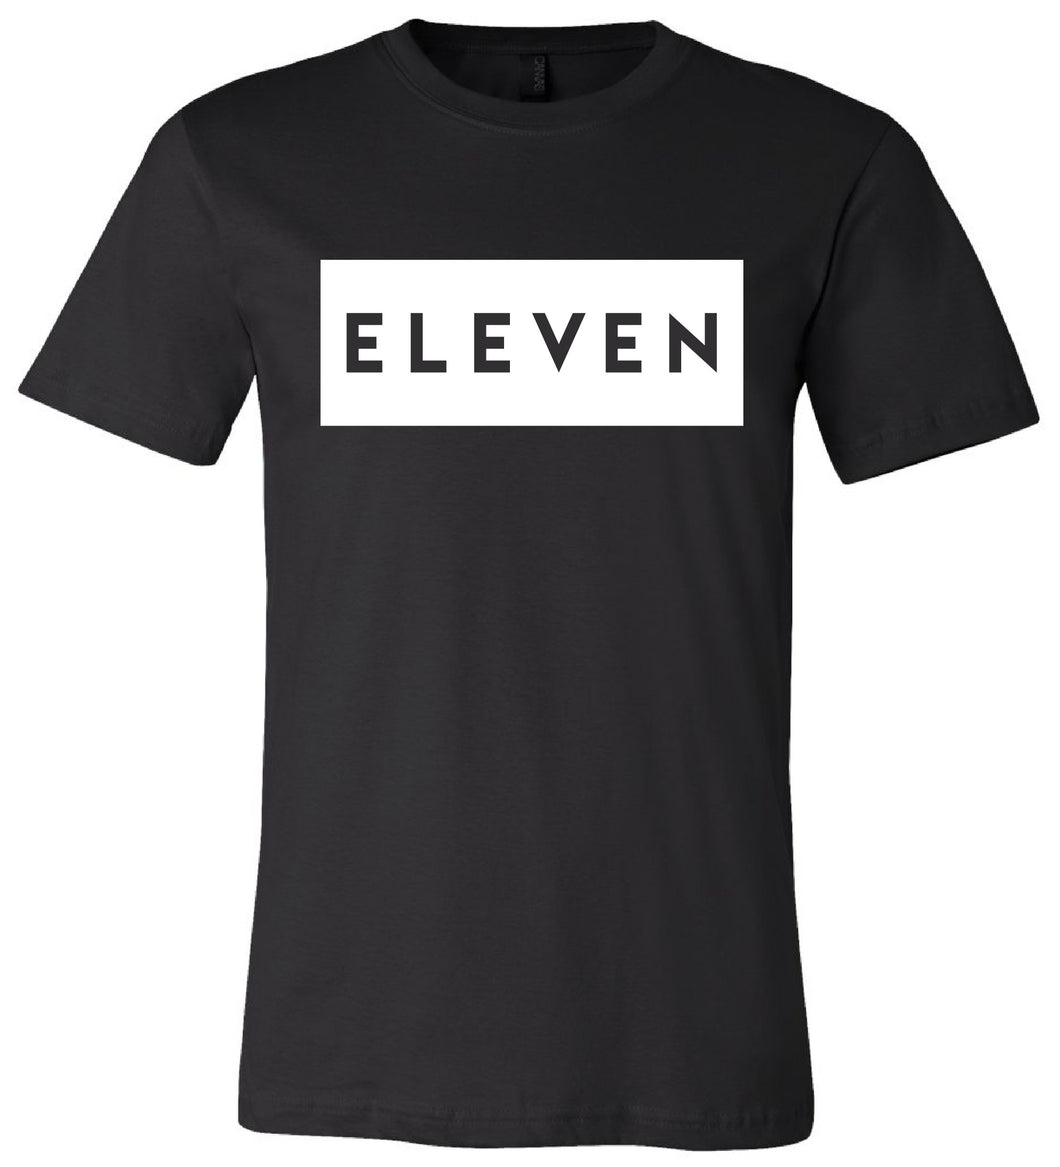 Soccer T-shirts, Soccer Apparel, Soccer Lifestyle